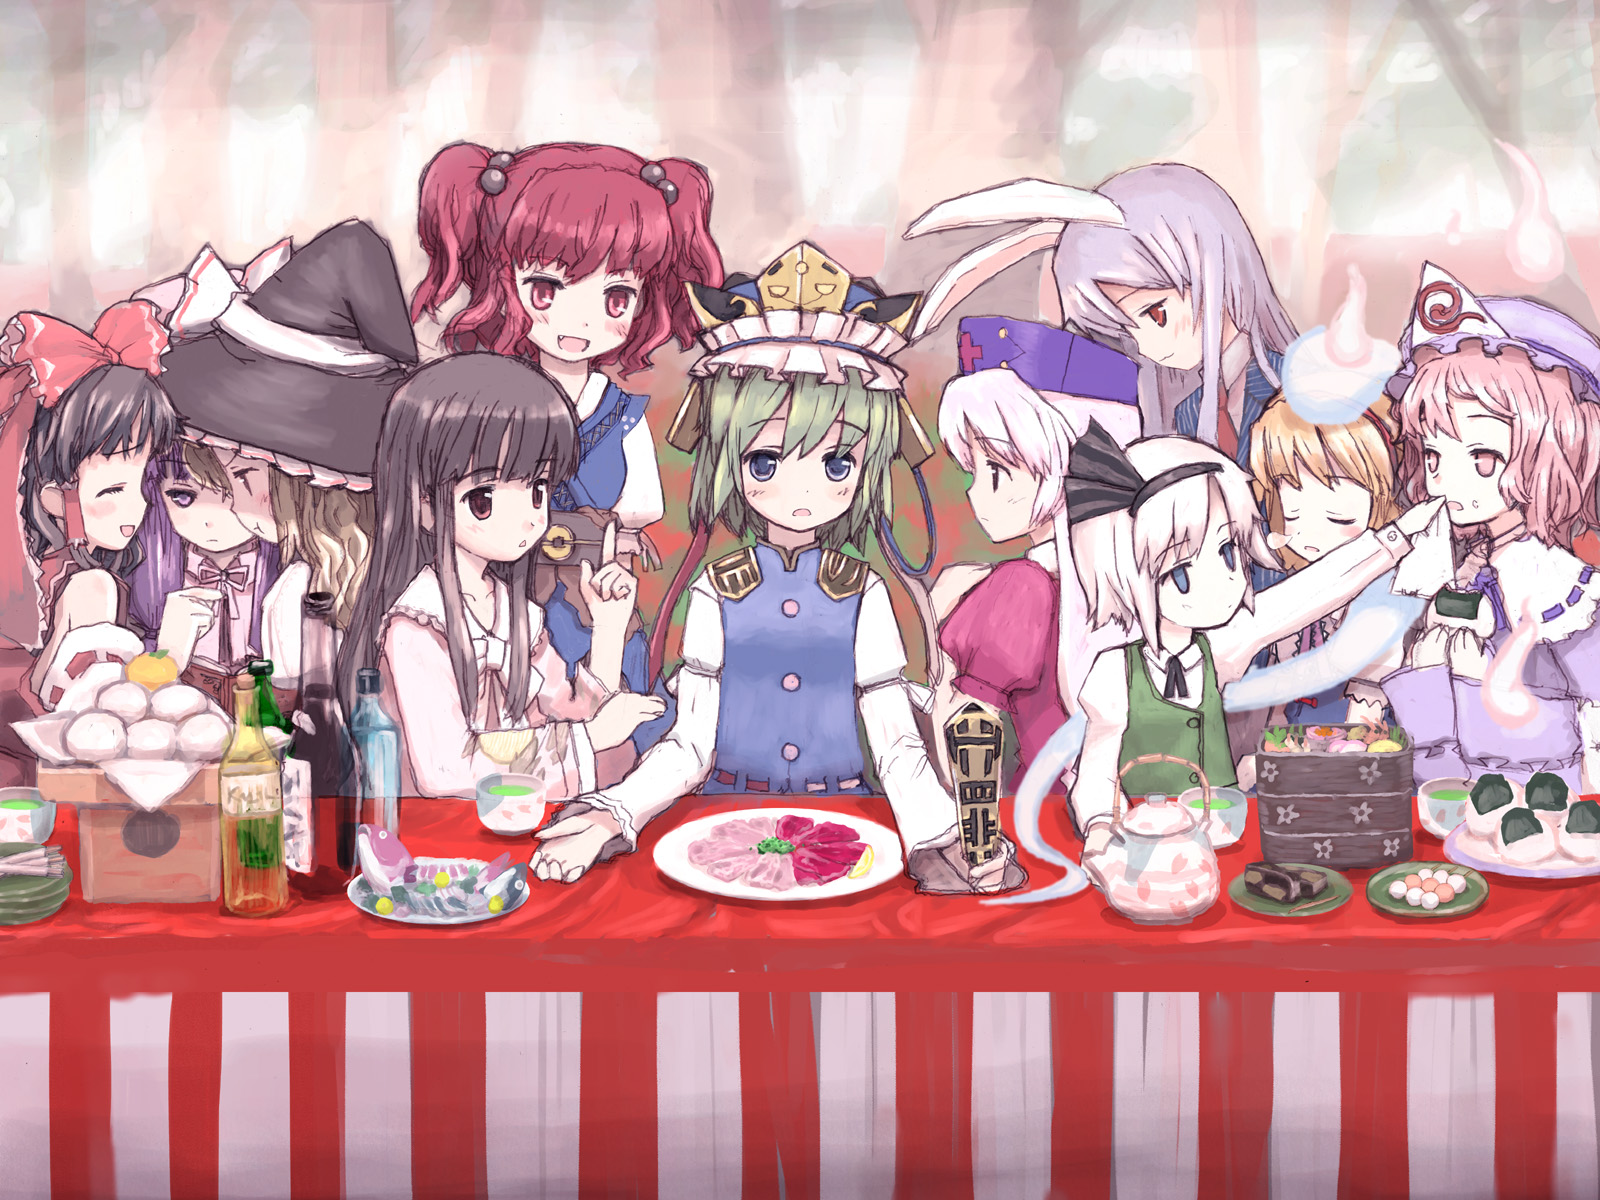 alice_margatroid animal_ears black_hair blonde_hair blue_eyes blush bunny_ears bunnygirl drink fang food green_hair group hakurei_reimu hat houraisan_kaguya japanese_clothes kimono kirisame_marisa konpaku_youmu long_hair miko myon onozuka_komachi patchouli_knowledge pink_eyes pink_hair purple_eyes purple_hair red_eyes red_hair reisen_udongein_inaba saigyouji_yuyuko sake shiki_eiki short_hair sleeping touhou twintails white_hair witch yagokoro_eirin